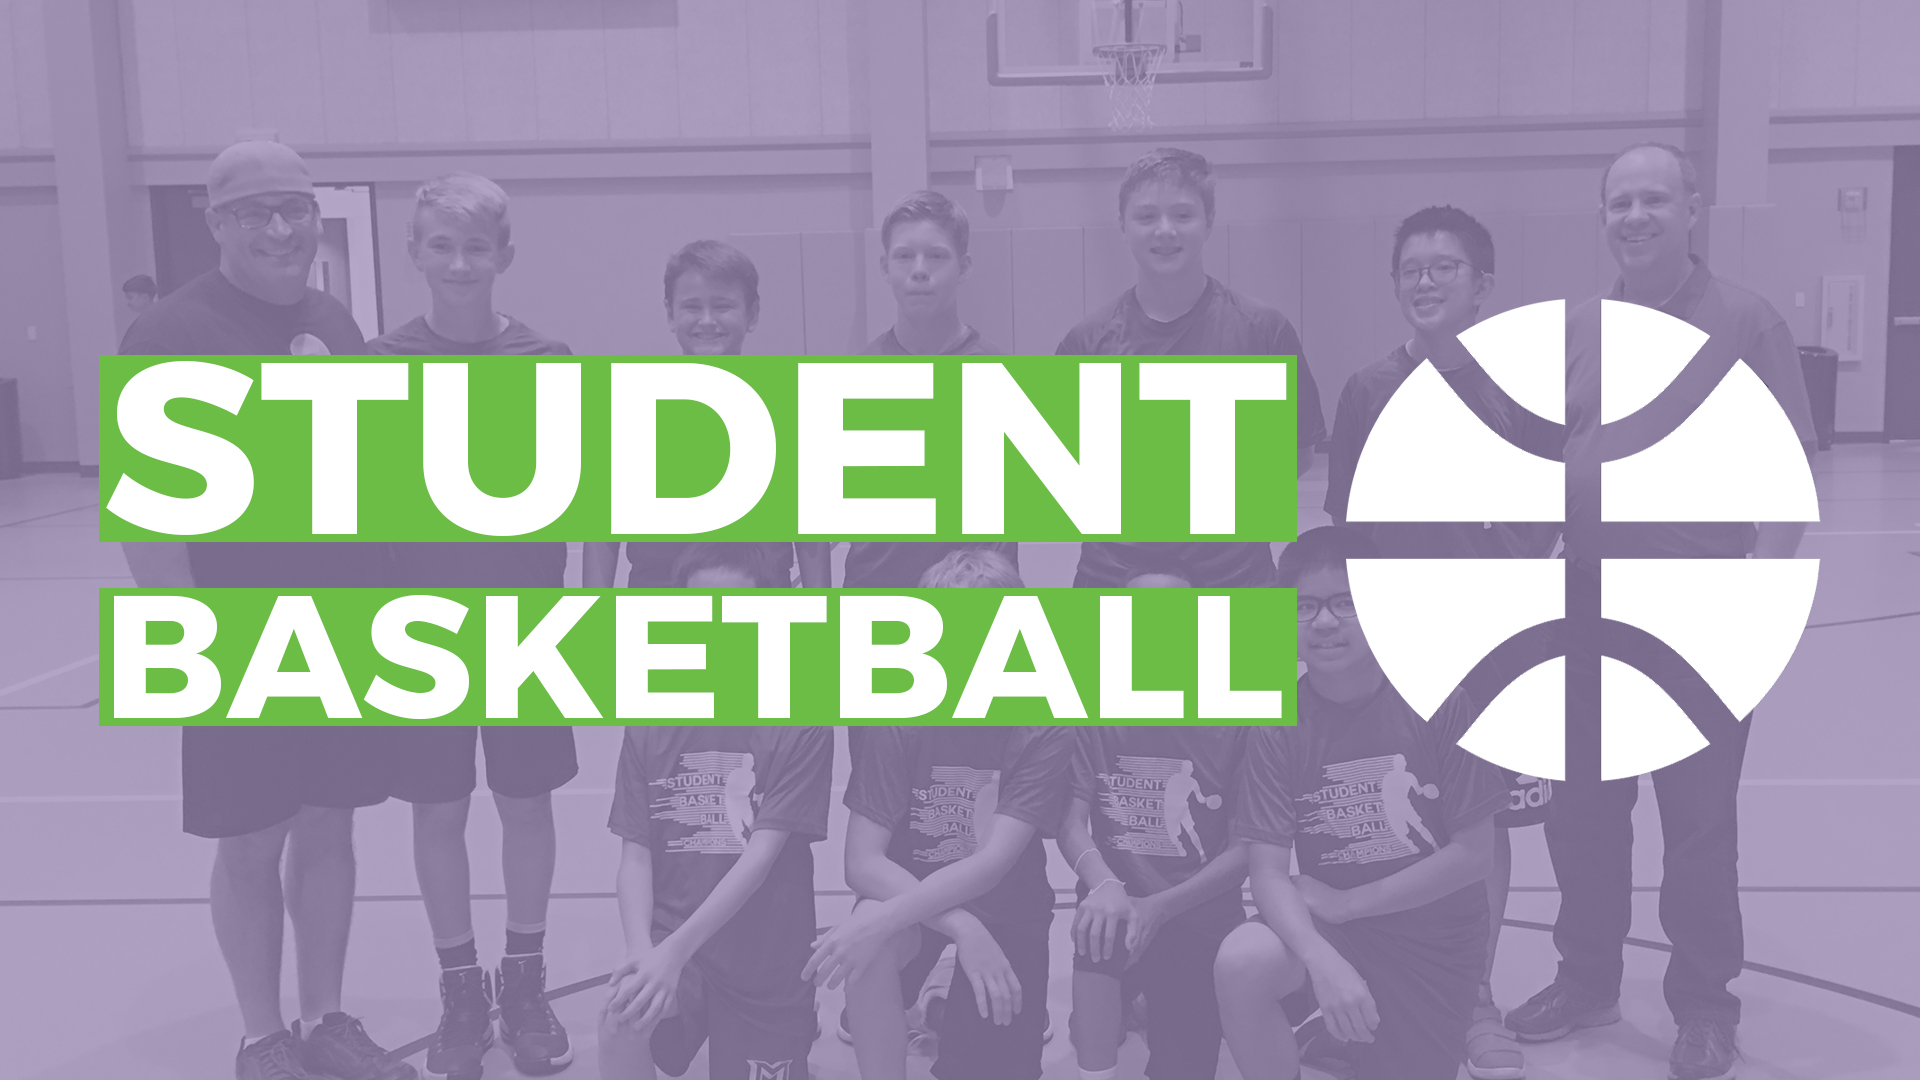 studentbasketball-w.jpg